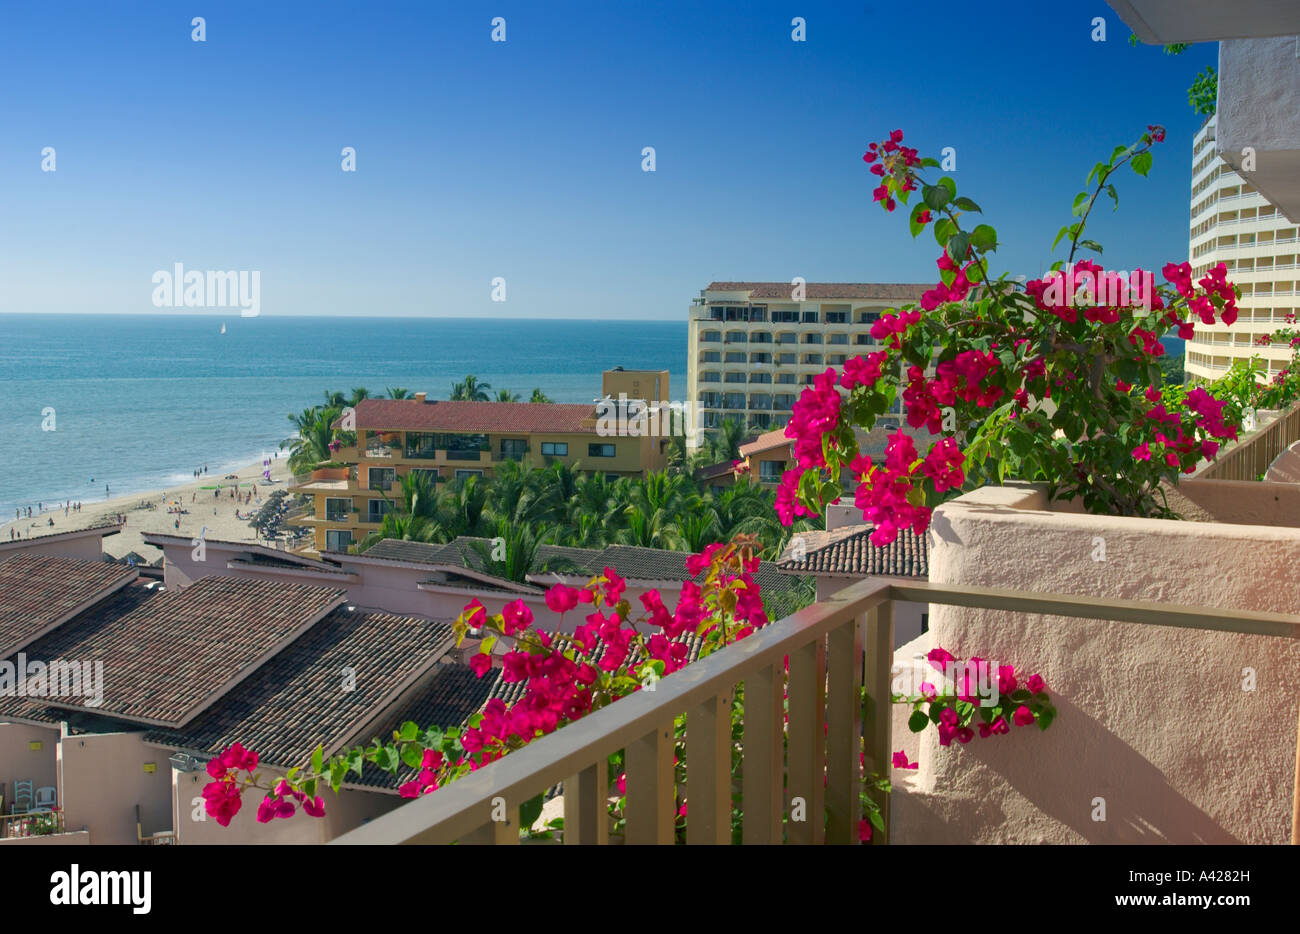 A hotel balcony decorated with red bougainvillea flowers in Puerto Vallarta Mexico - Stock Image